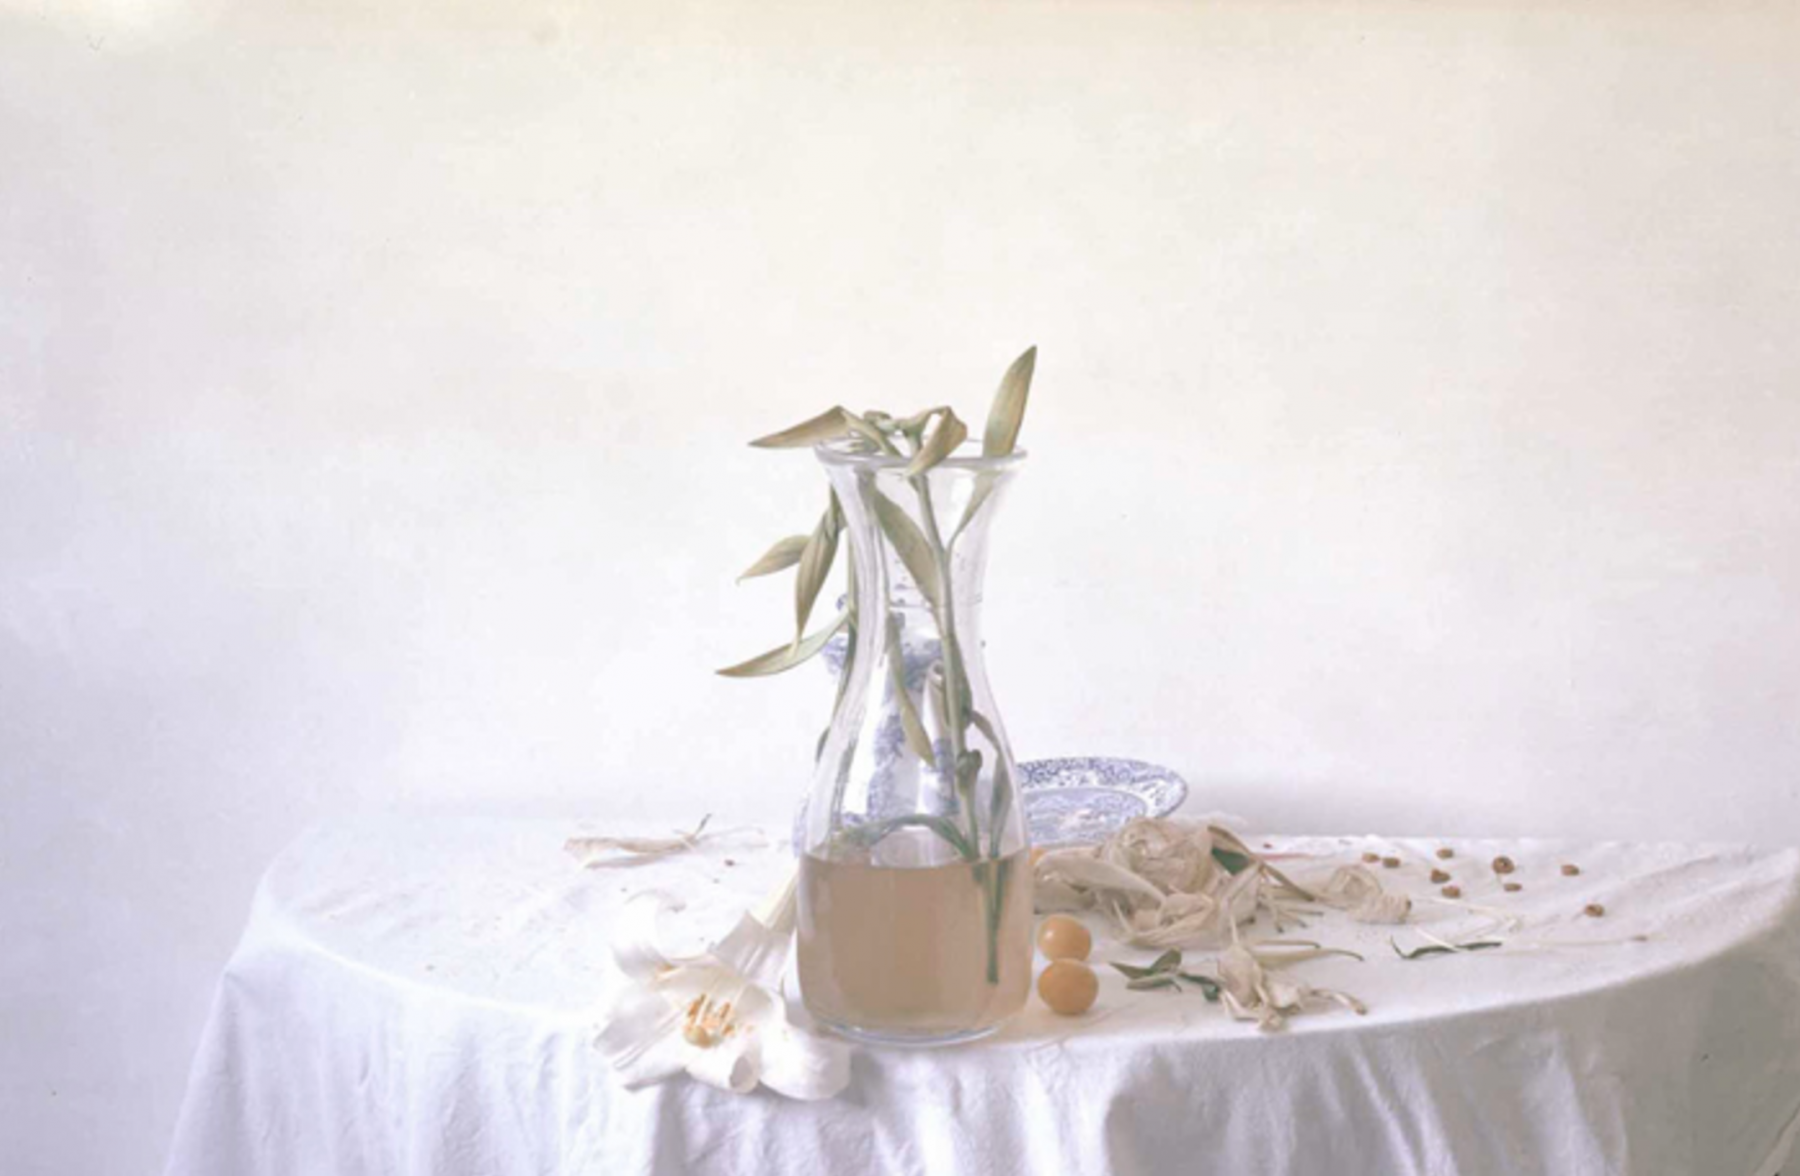 Laura Letinsky,  Untitled #32, from the series Hardly More Than Ever, 2001,  Archival Pigment Print,  15.25h x 23w in, Edition of 15, Photography